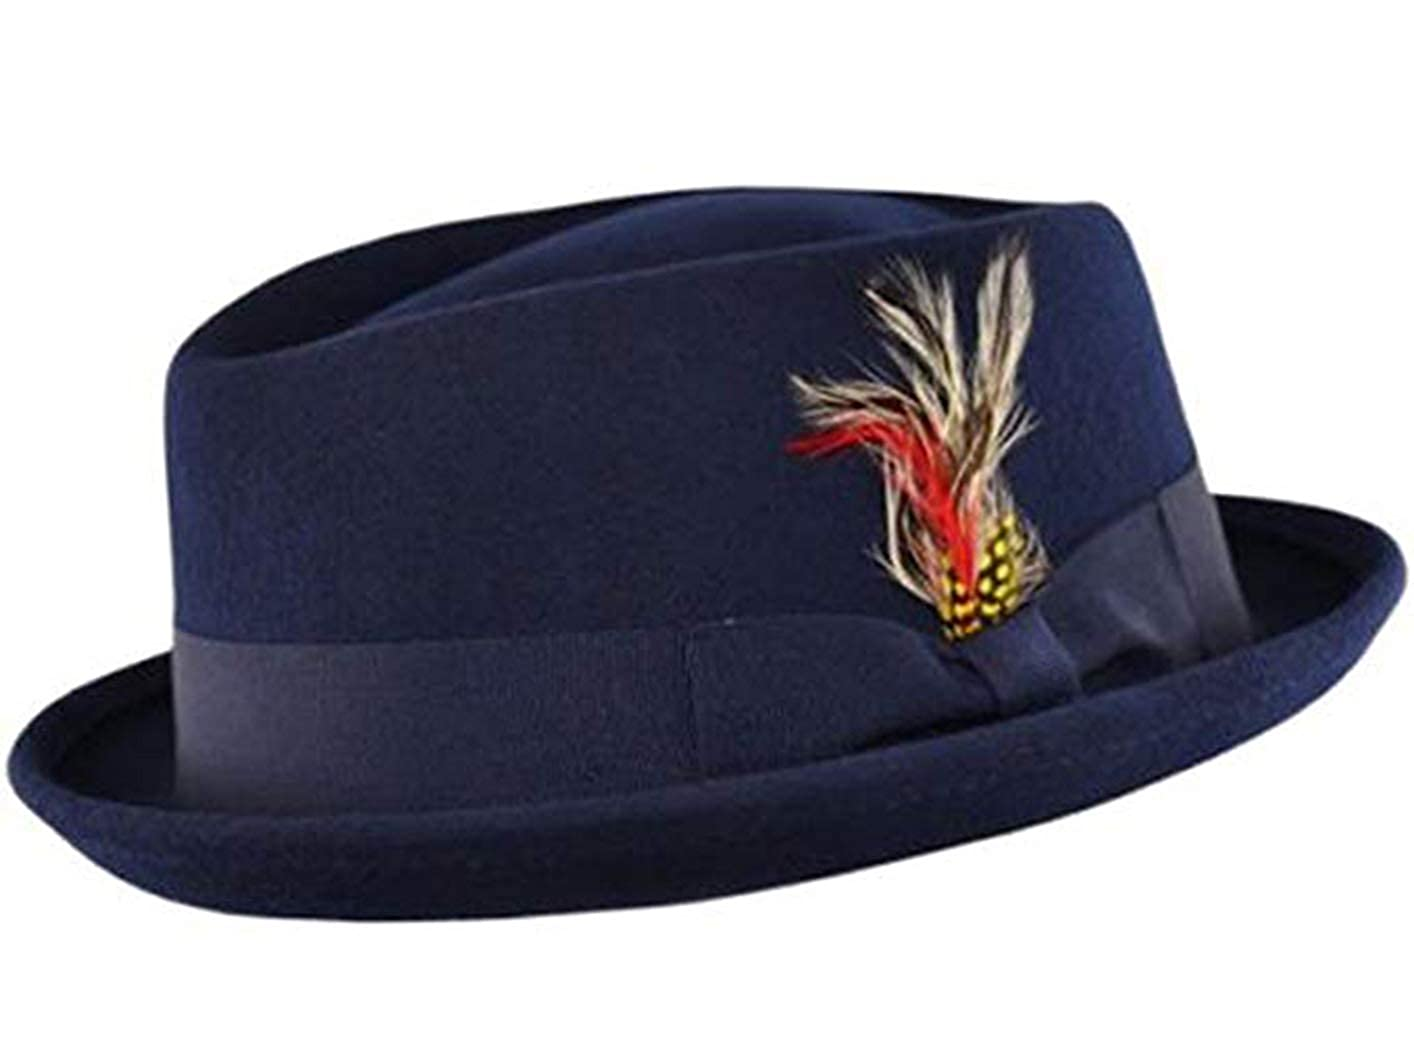 Unisex Superb Foldable Pork Pie Trilby Hat with Removable Feather and Matching Band 100% Wool Hand Made Diamond Crown